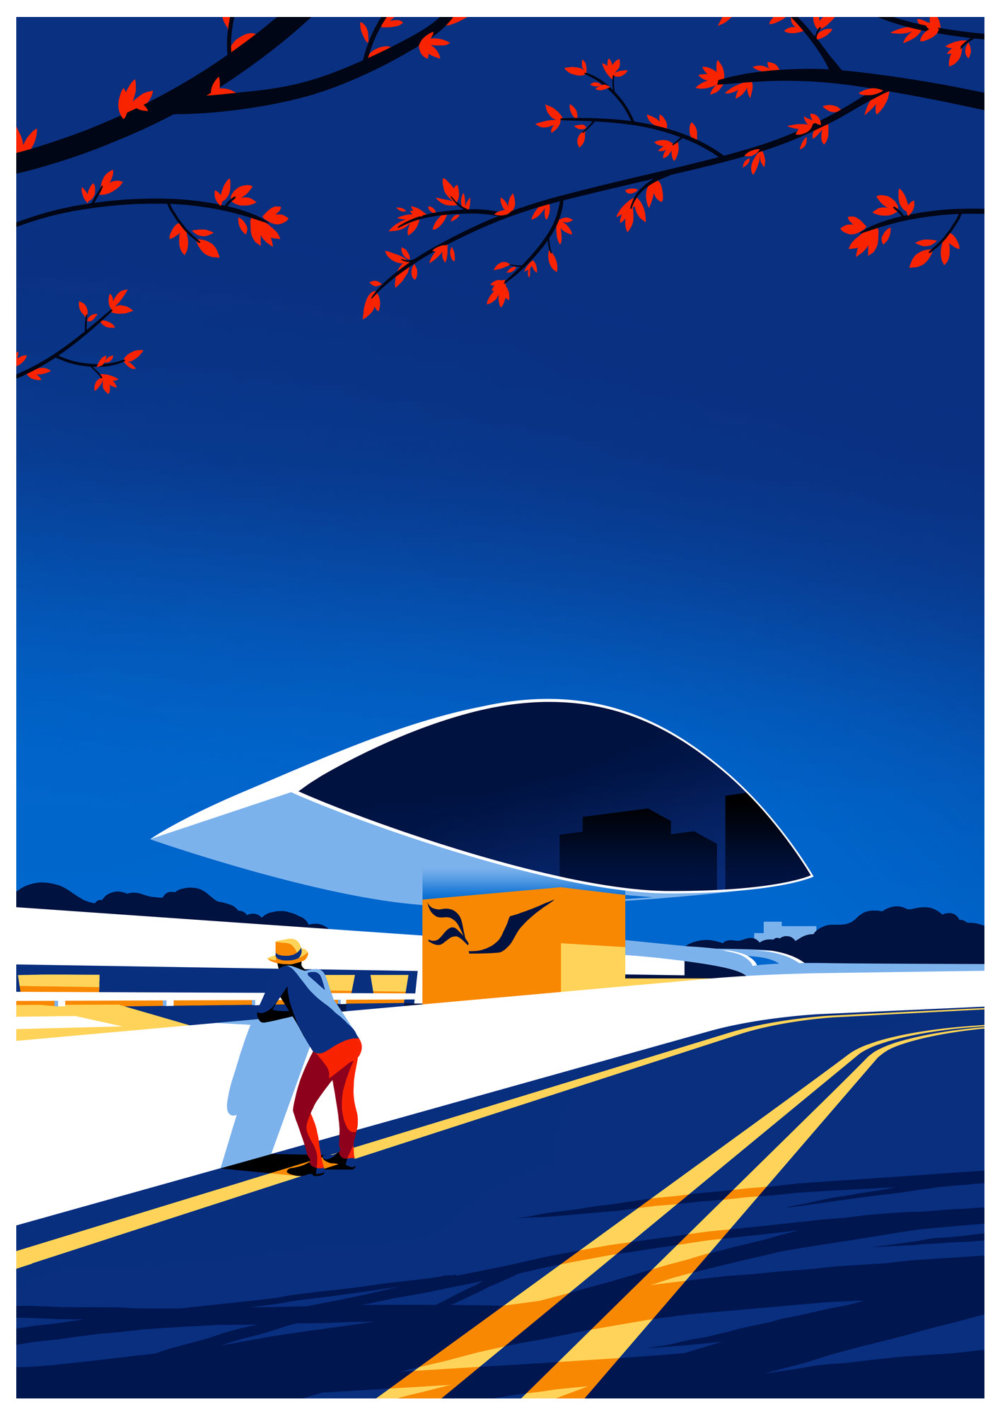 Utopia Architectural Illustration Series Featuring Oscar Niemeyers Design Lines By Levente Szabo 4